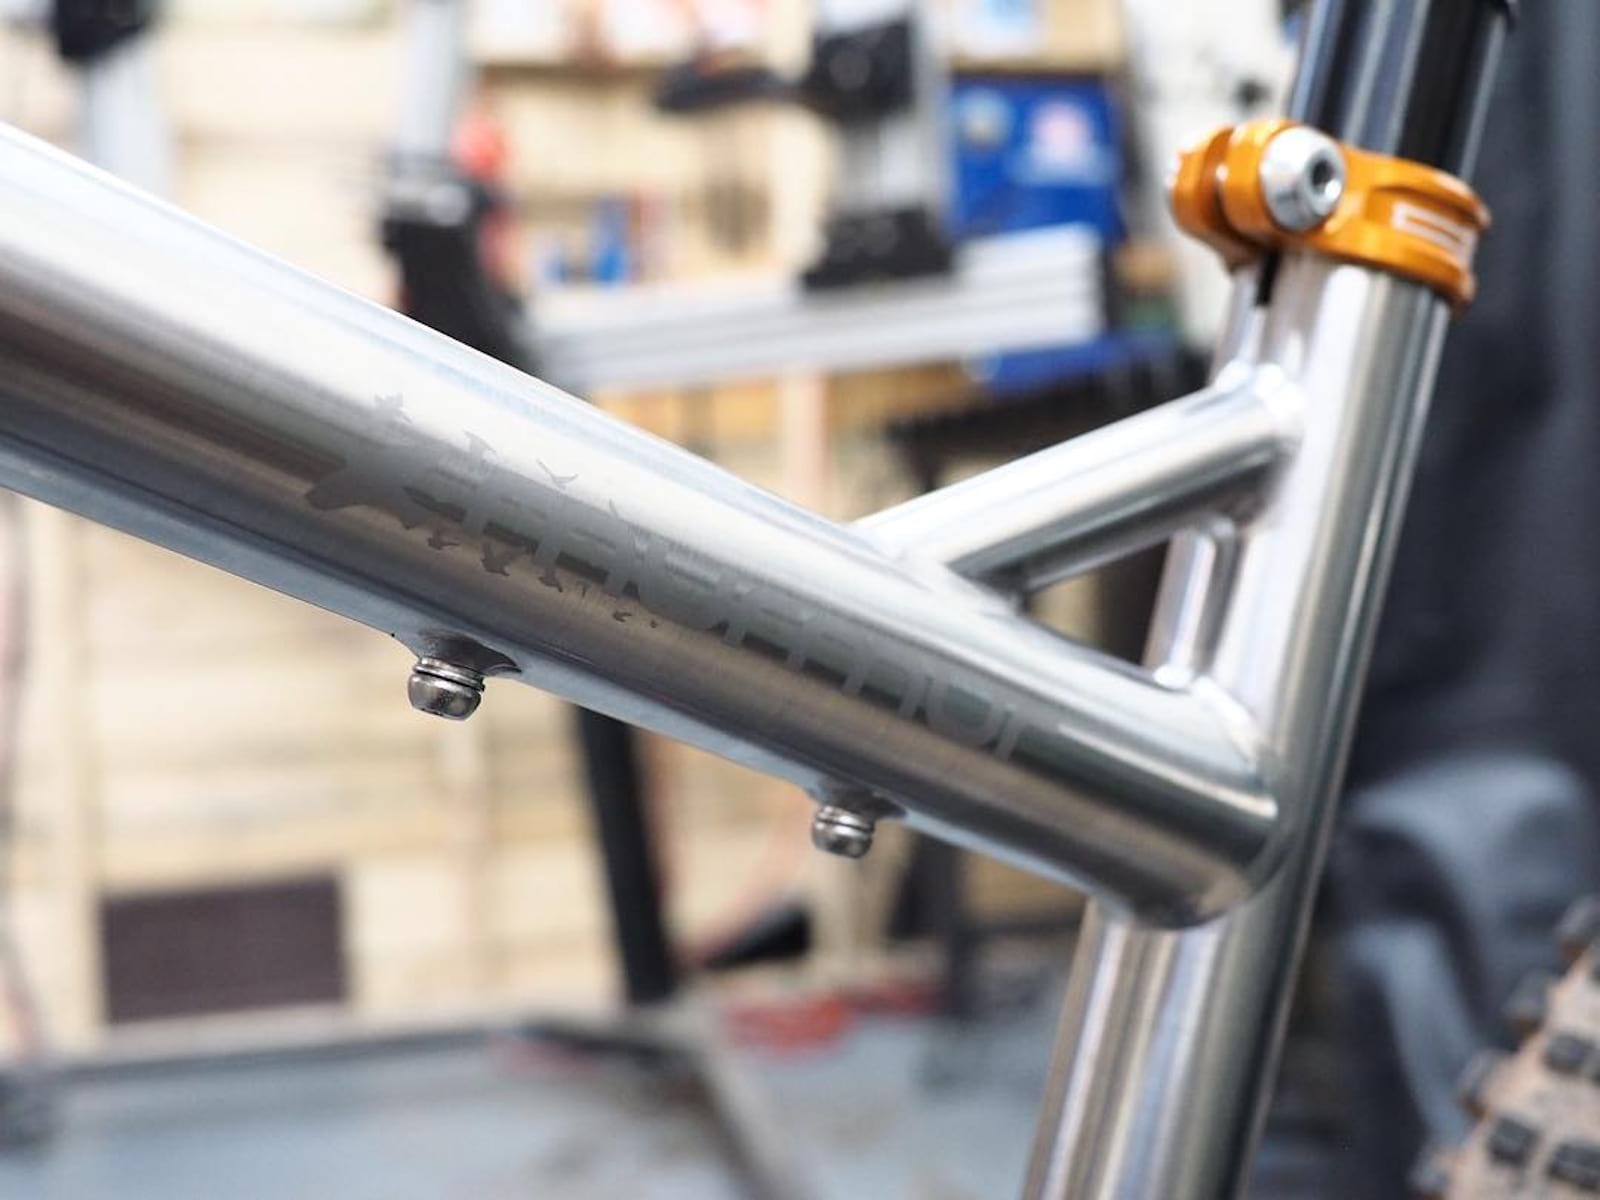 Starling Cycles Tease Stainless Steel Murmor, or is it Ti?